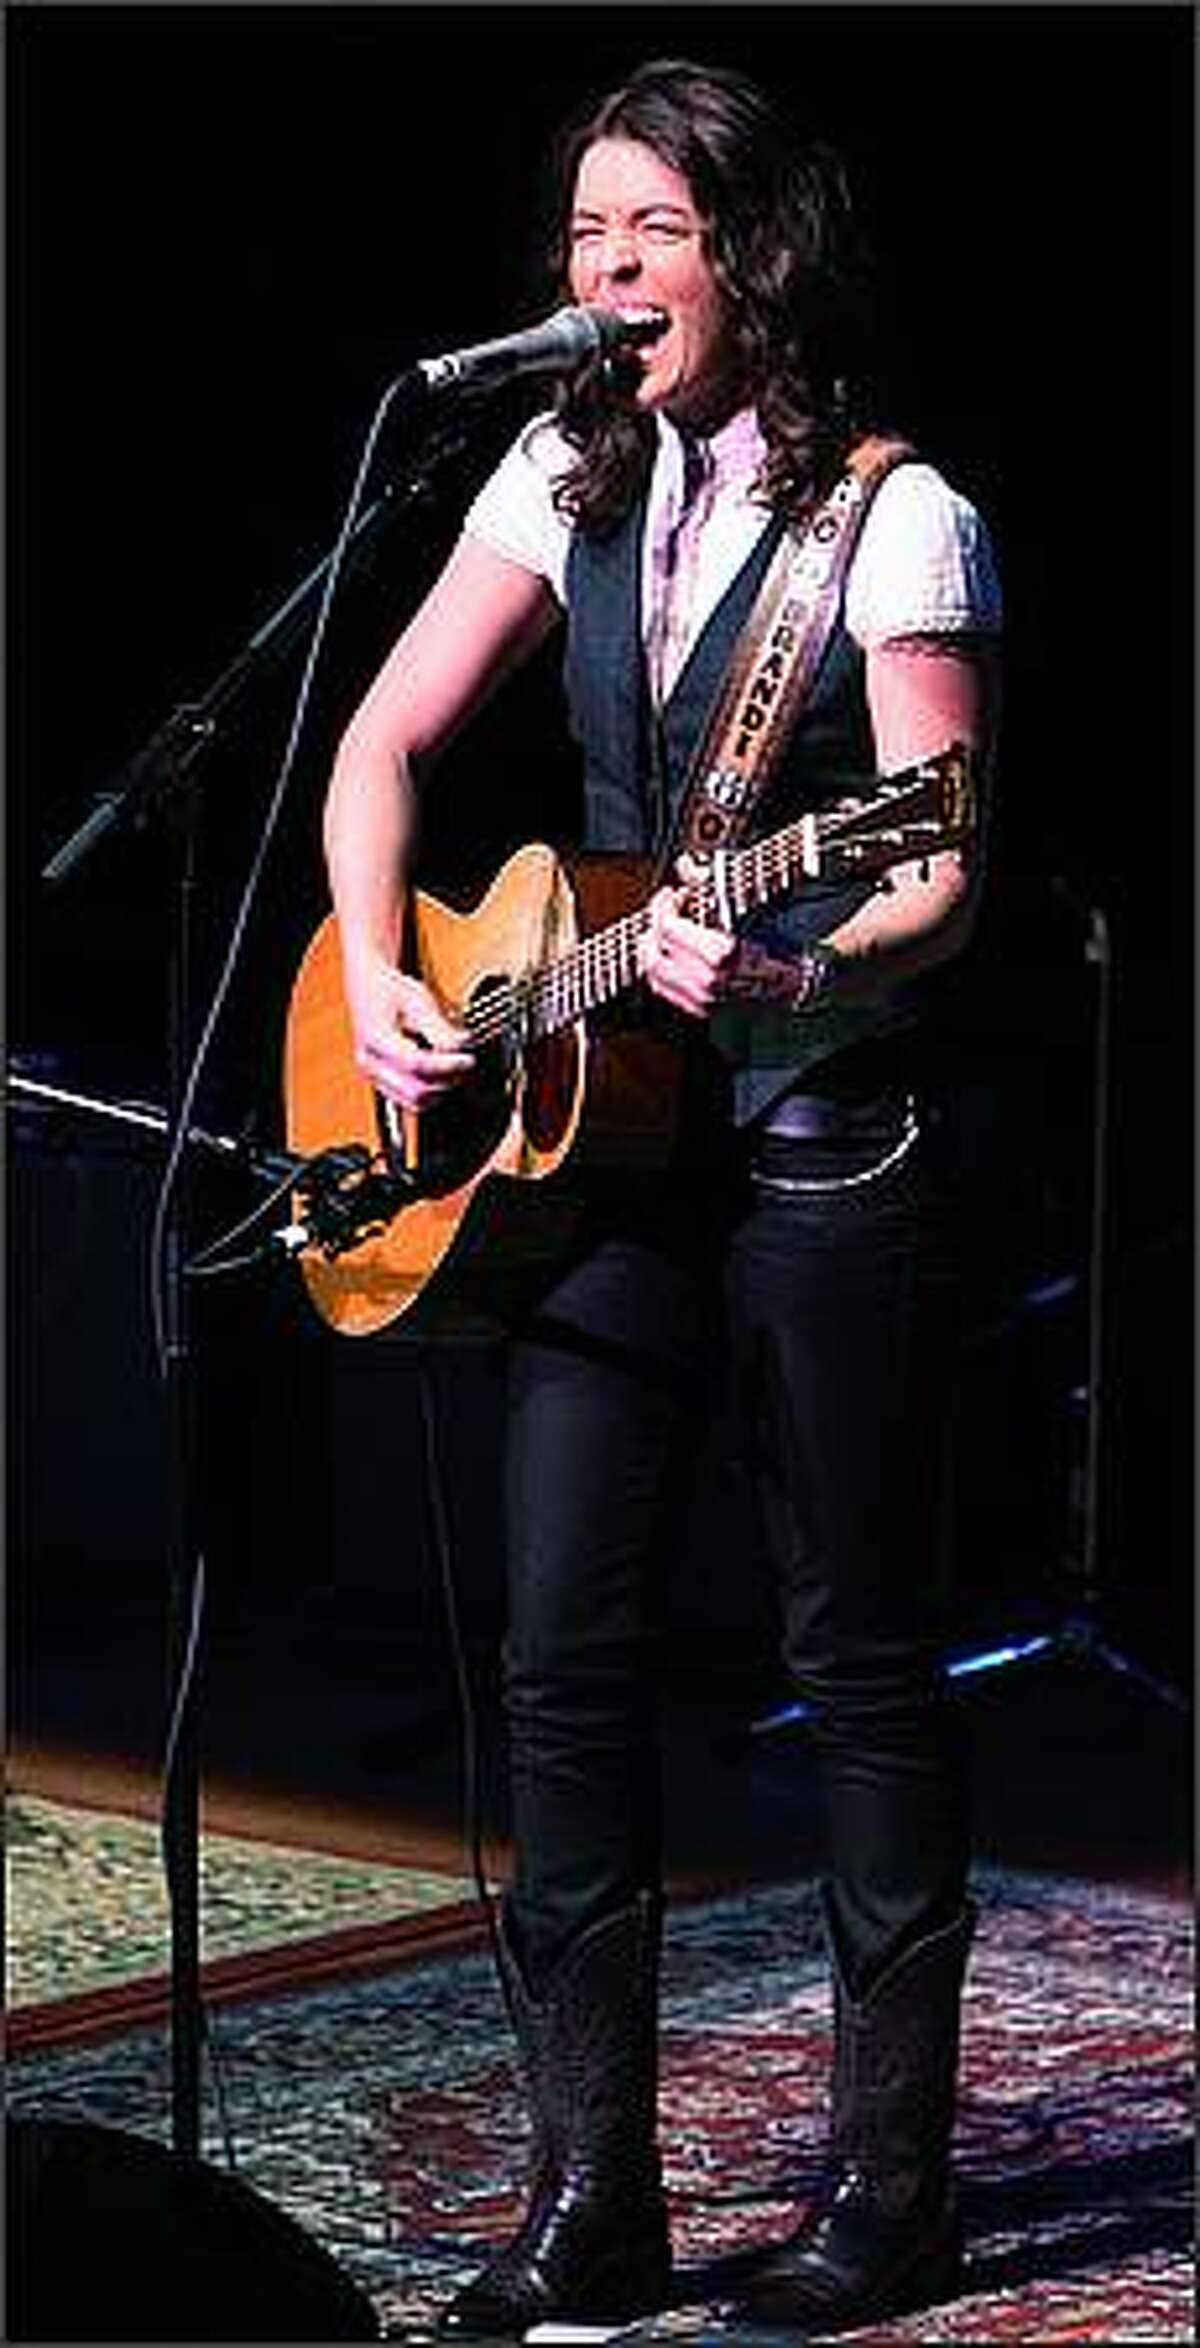 Brandi Carlile, a Seattle native, performs at Benaroya Hall.